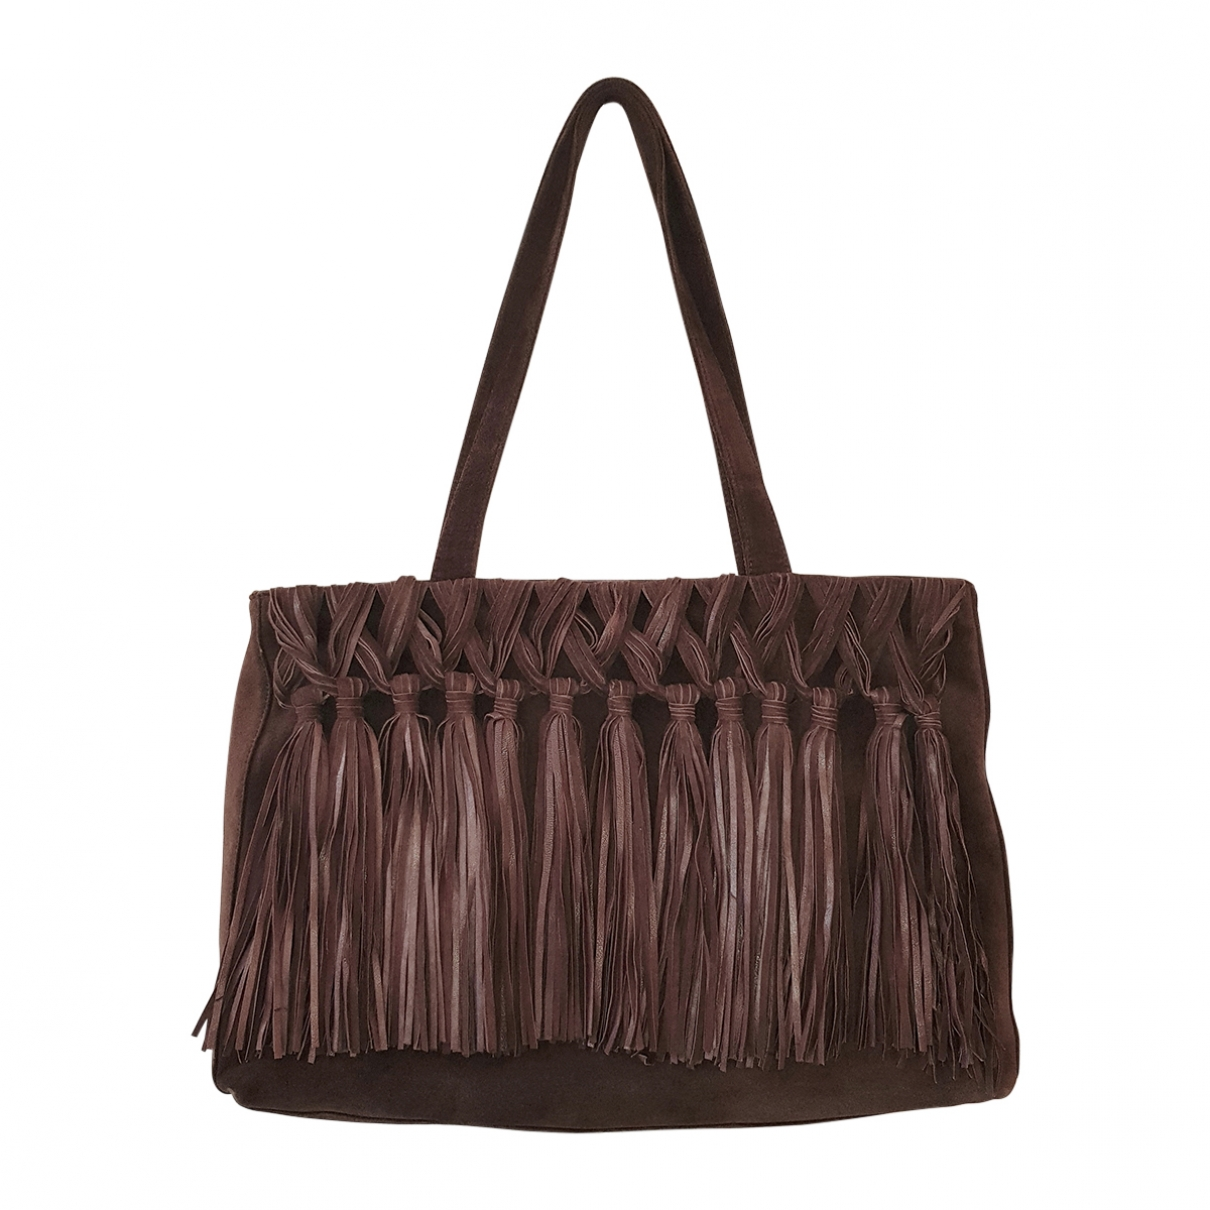 Genny \N Brown Suede handbag for Women \N